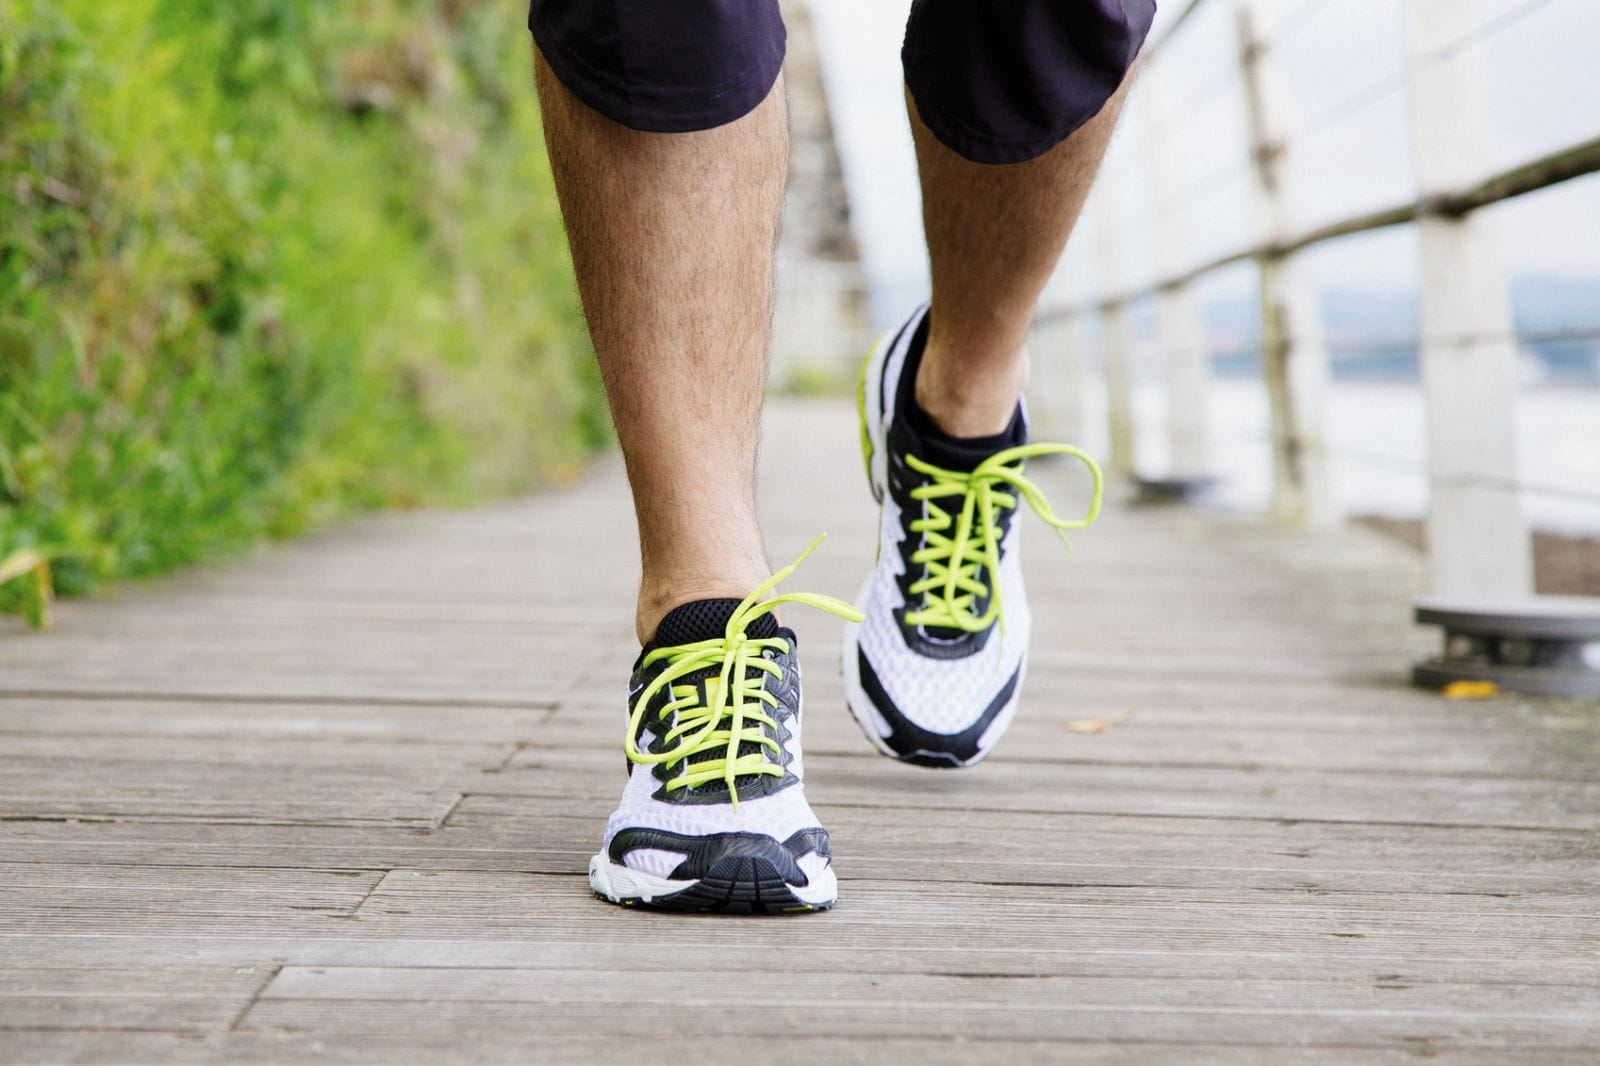 3 Strategies for Healthy Feet for the New Year!